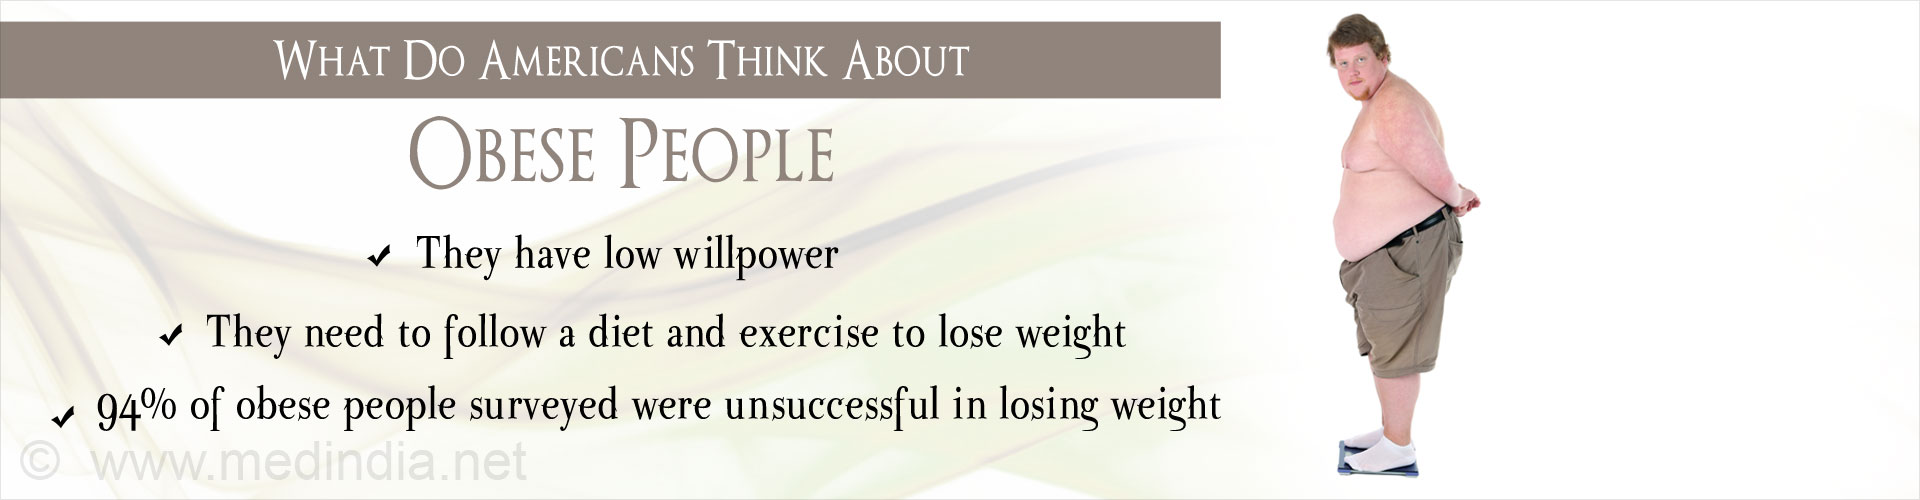 American Survey Finds People Blame Willpower for Obesity